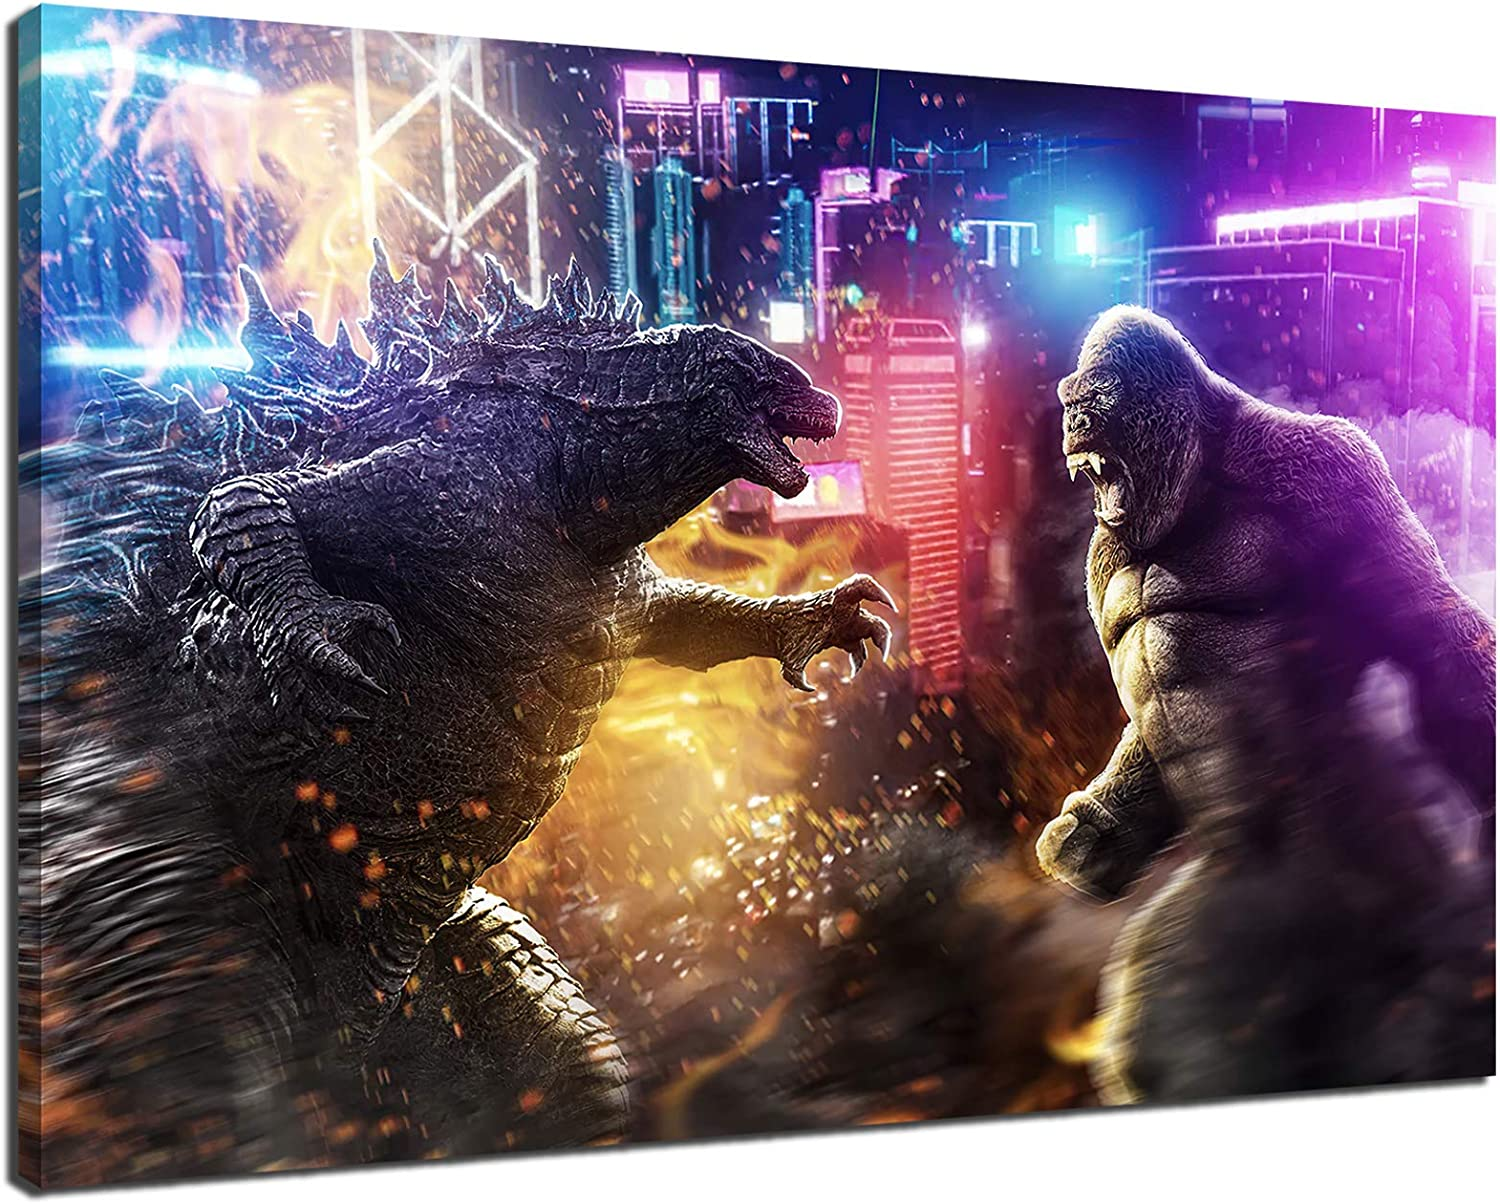 Godzilla and New Orleans Mall King Kong 2021 movie wall canvas Super sale period limited poster HD printing